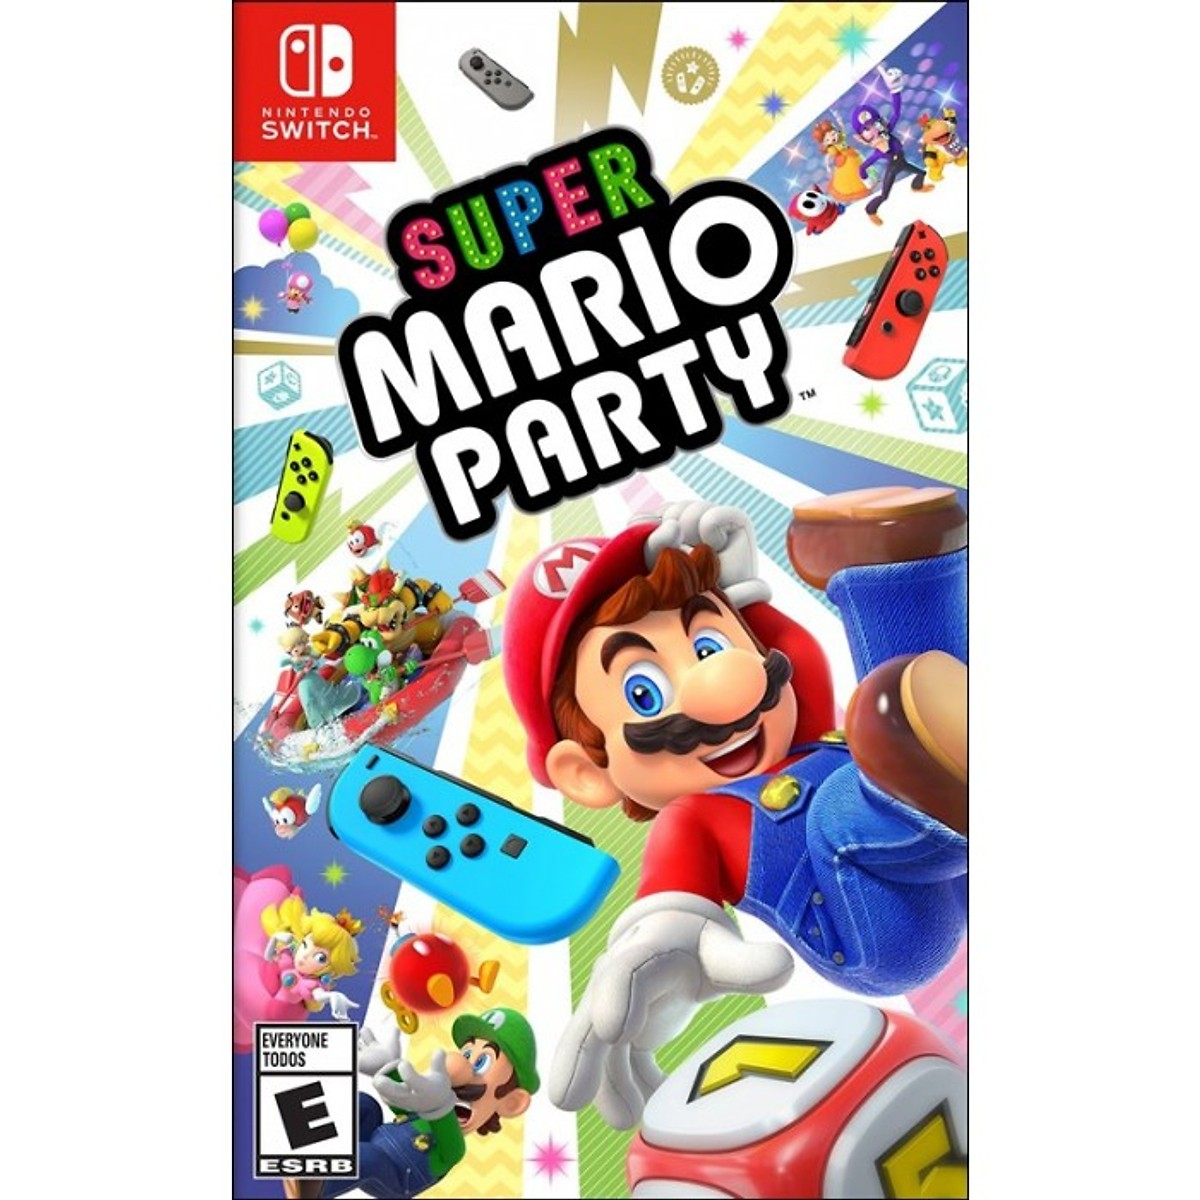 dia-game-nintendo-switch-super-mario-party